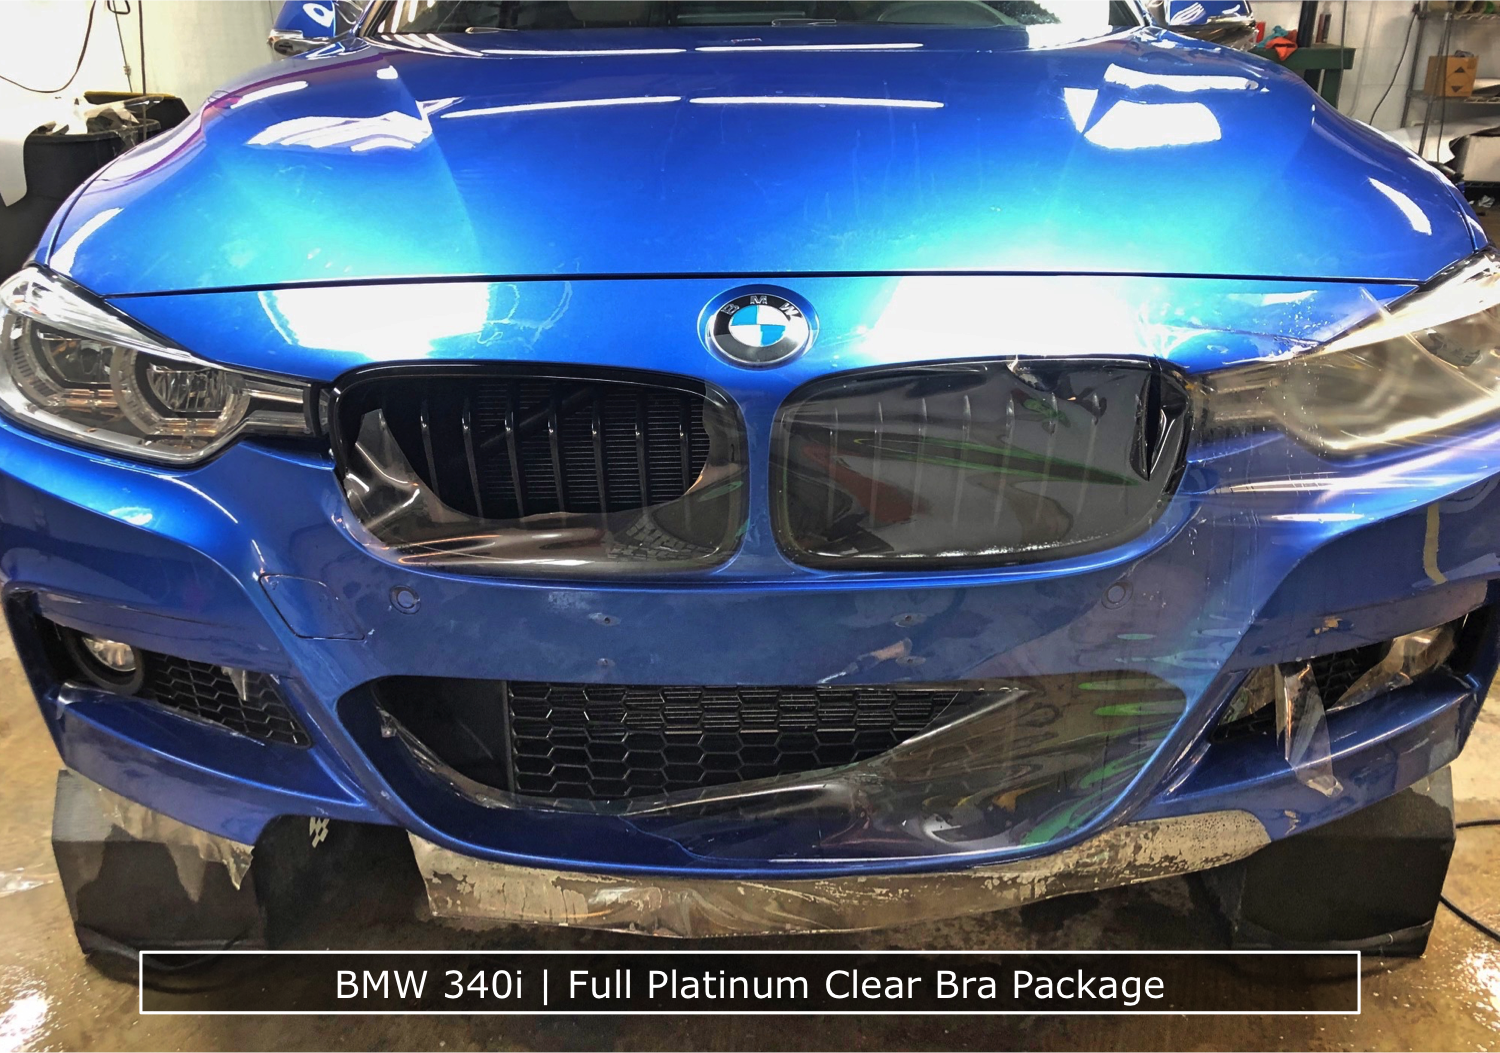 BMW 340i Getting Clear Bra